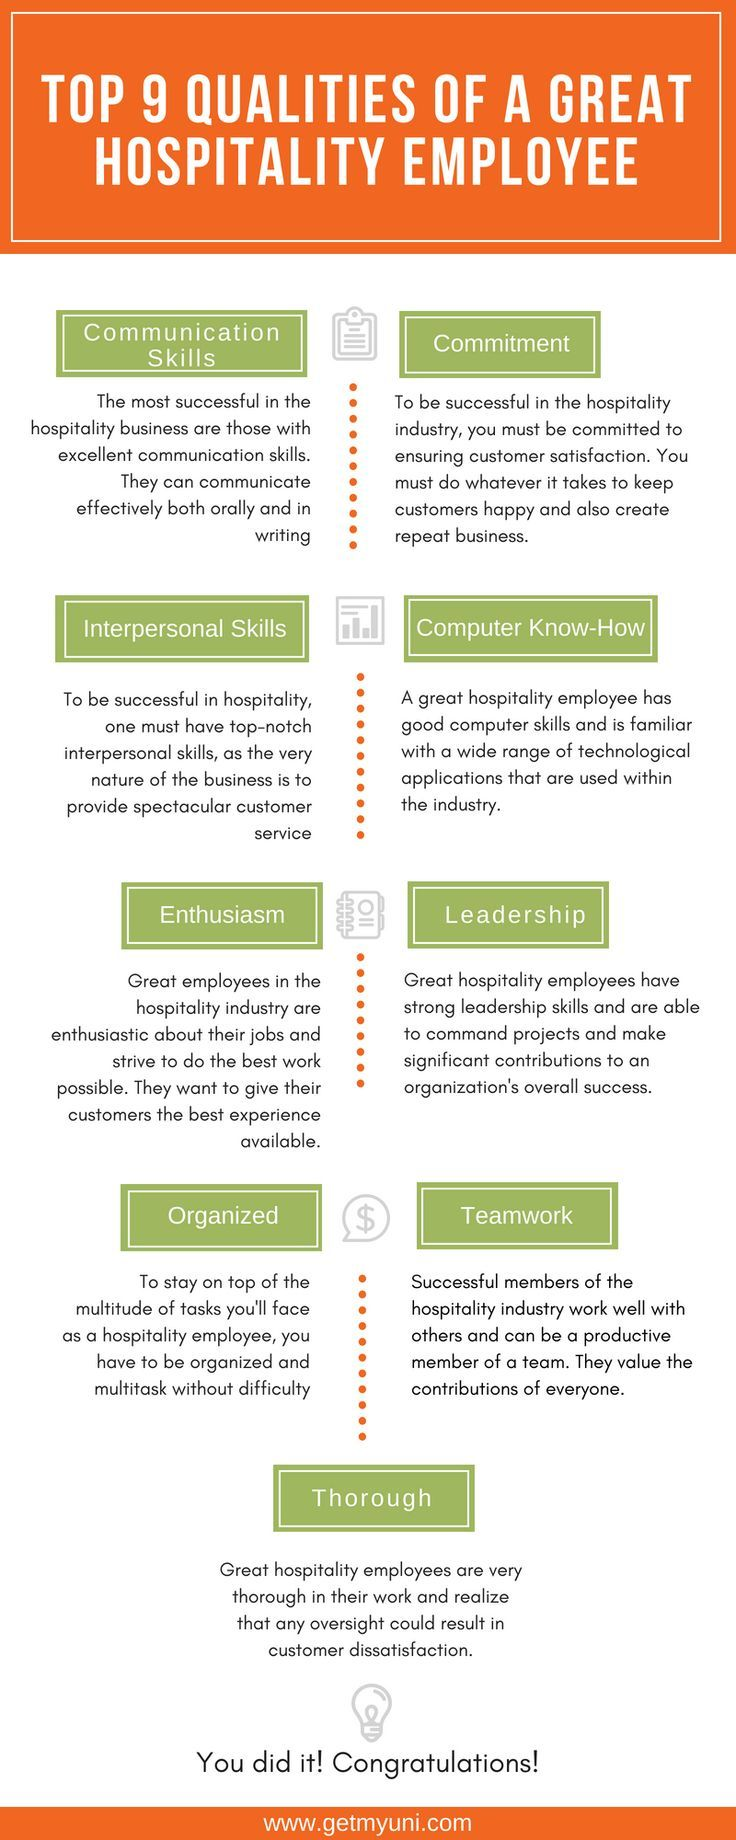 Hotel Management Is A Part Of The Hospitality Sector In India And